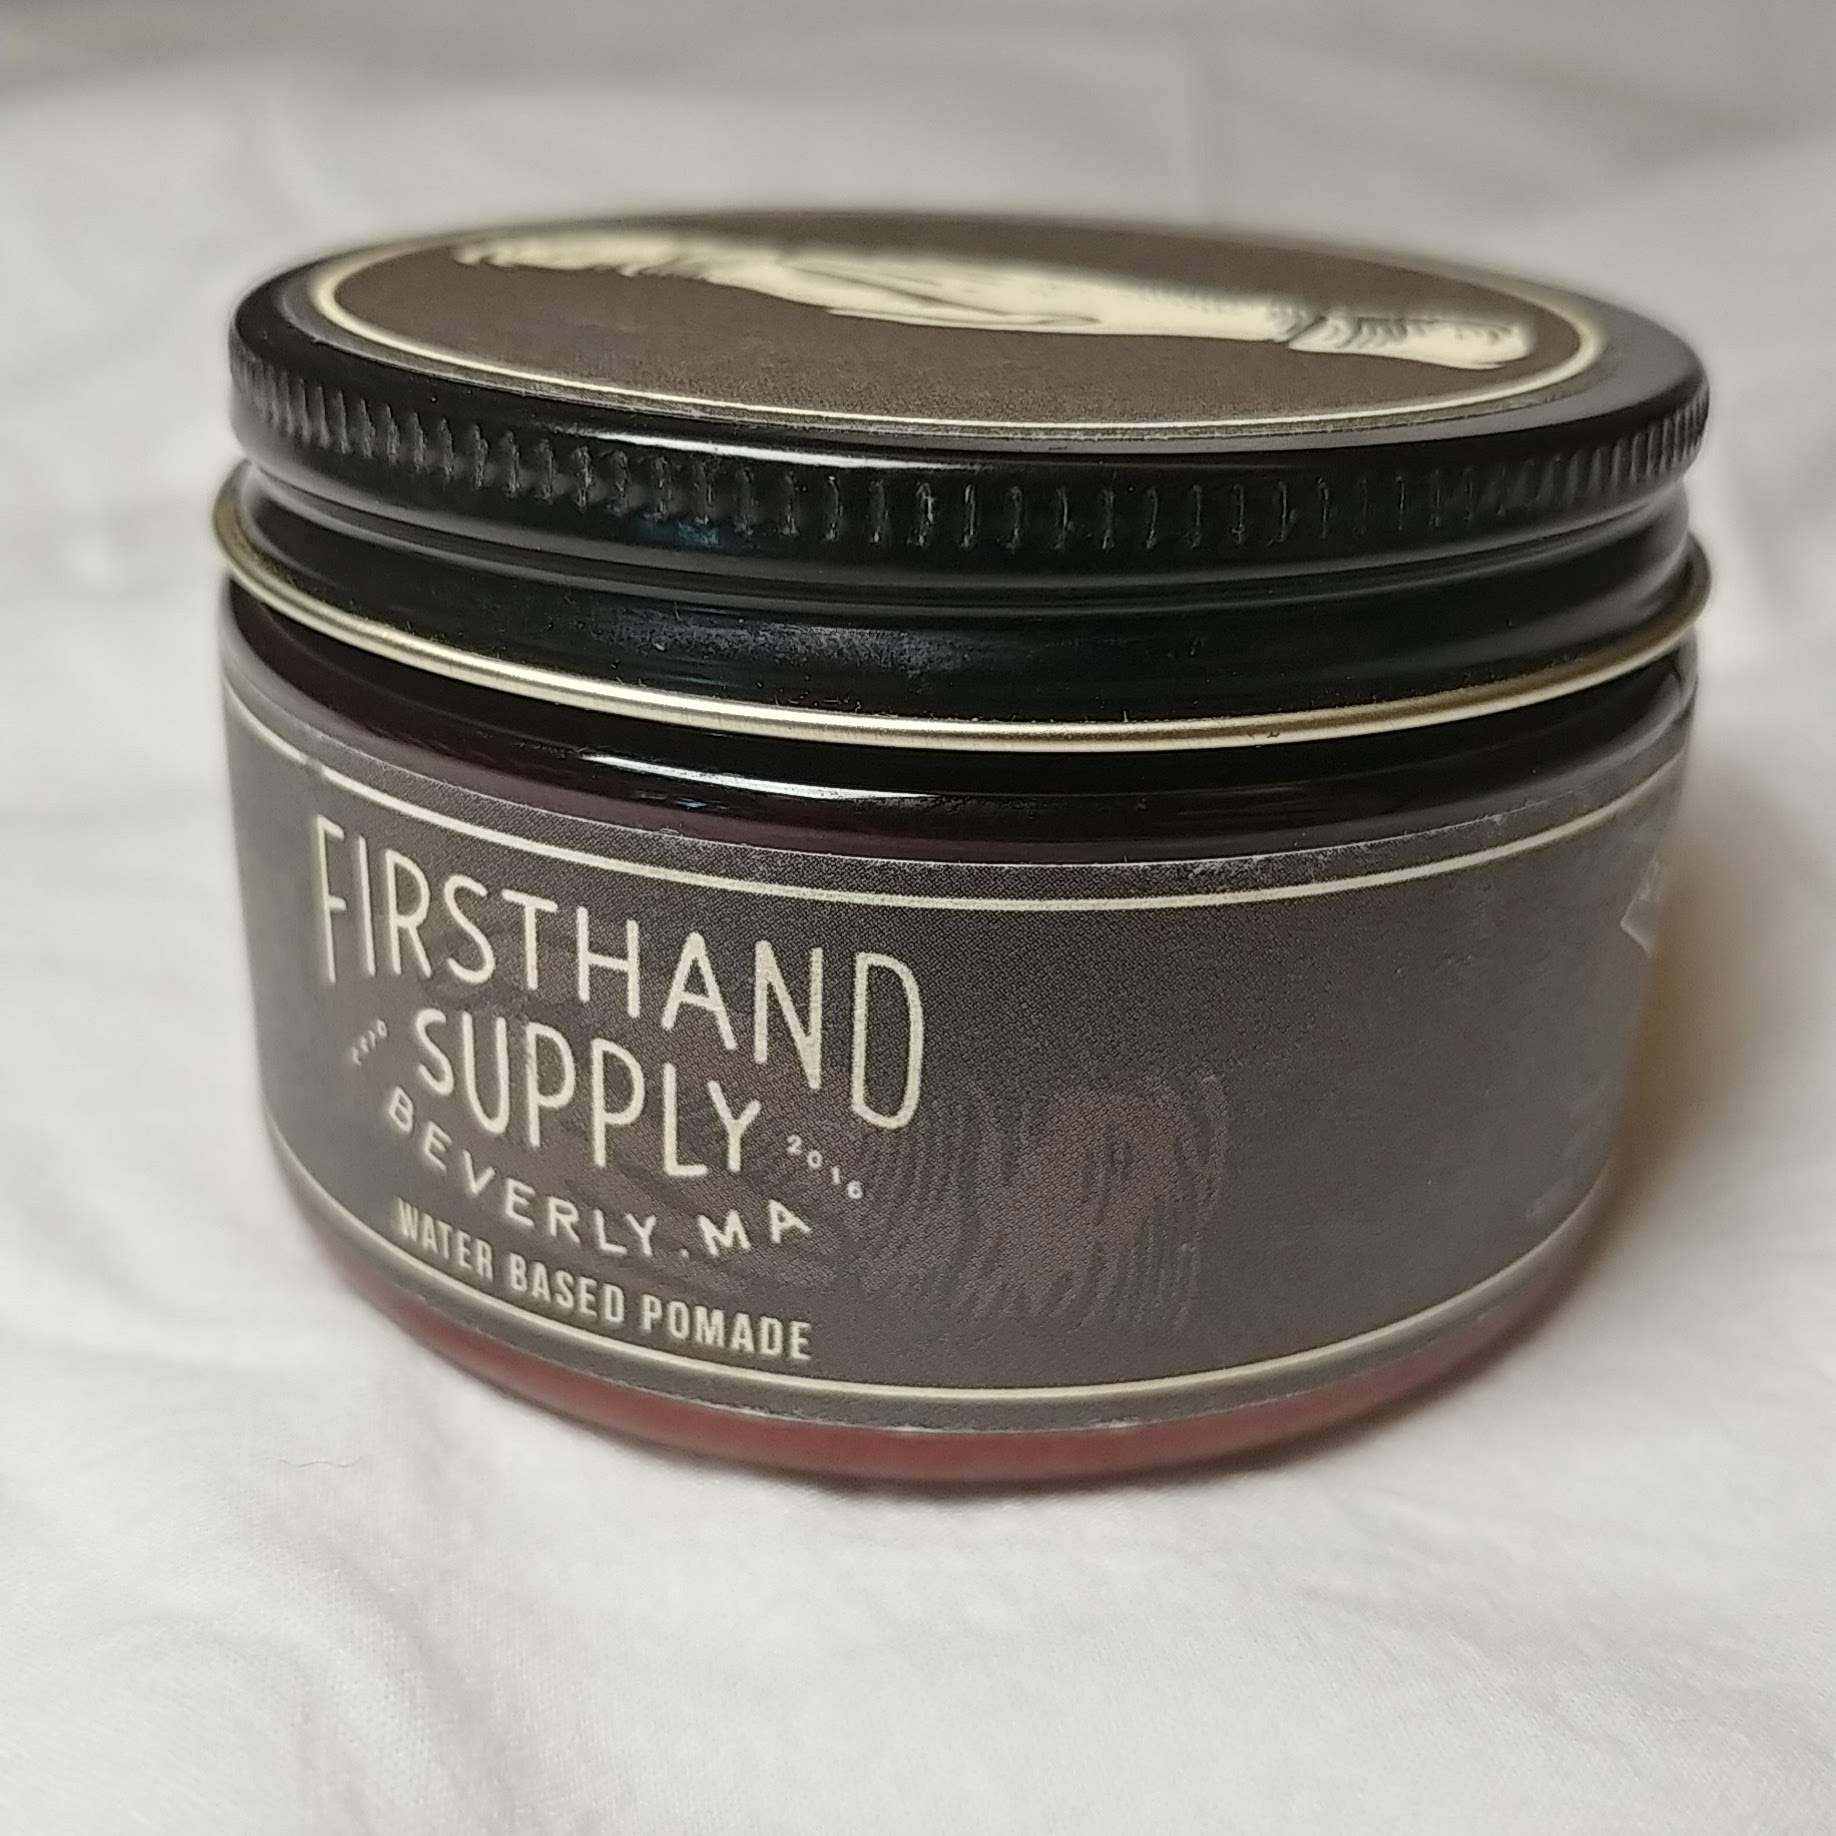 Firsthand Supply Water Based Pomade